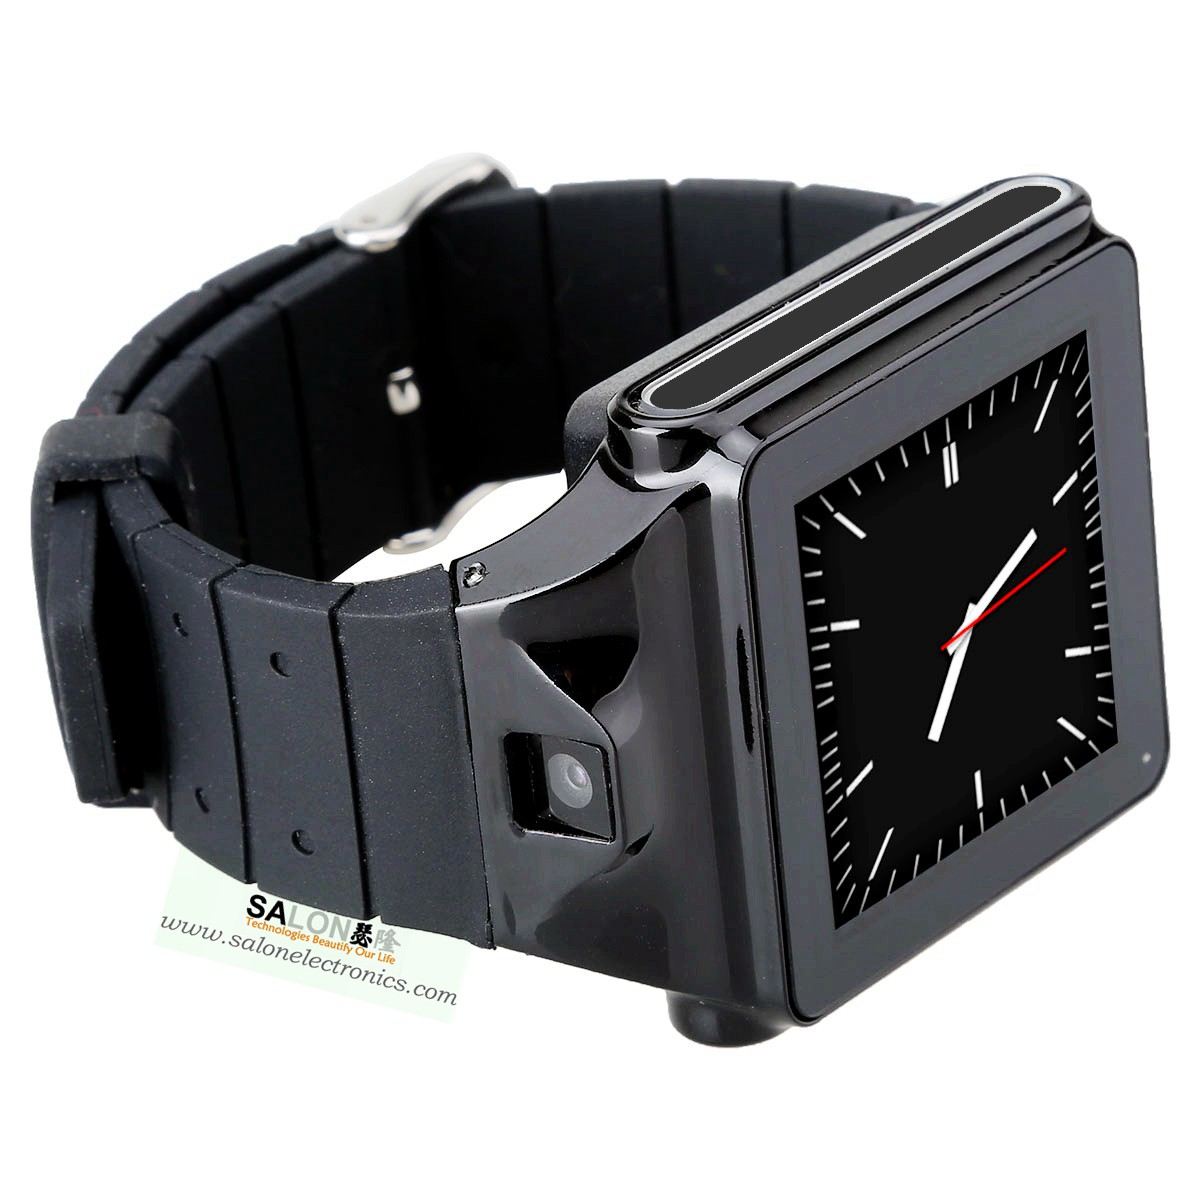 Android4.04 MTK6577 GSM GPS Bluetooth4.0 WiFi 5MP Camera 2014 Latest Wrist Watch Mobile Phone